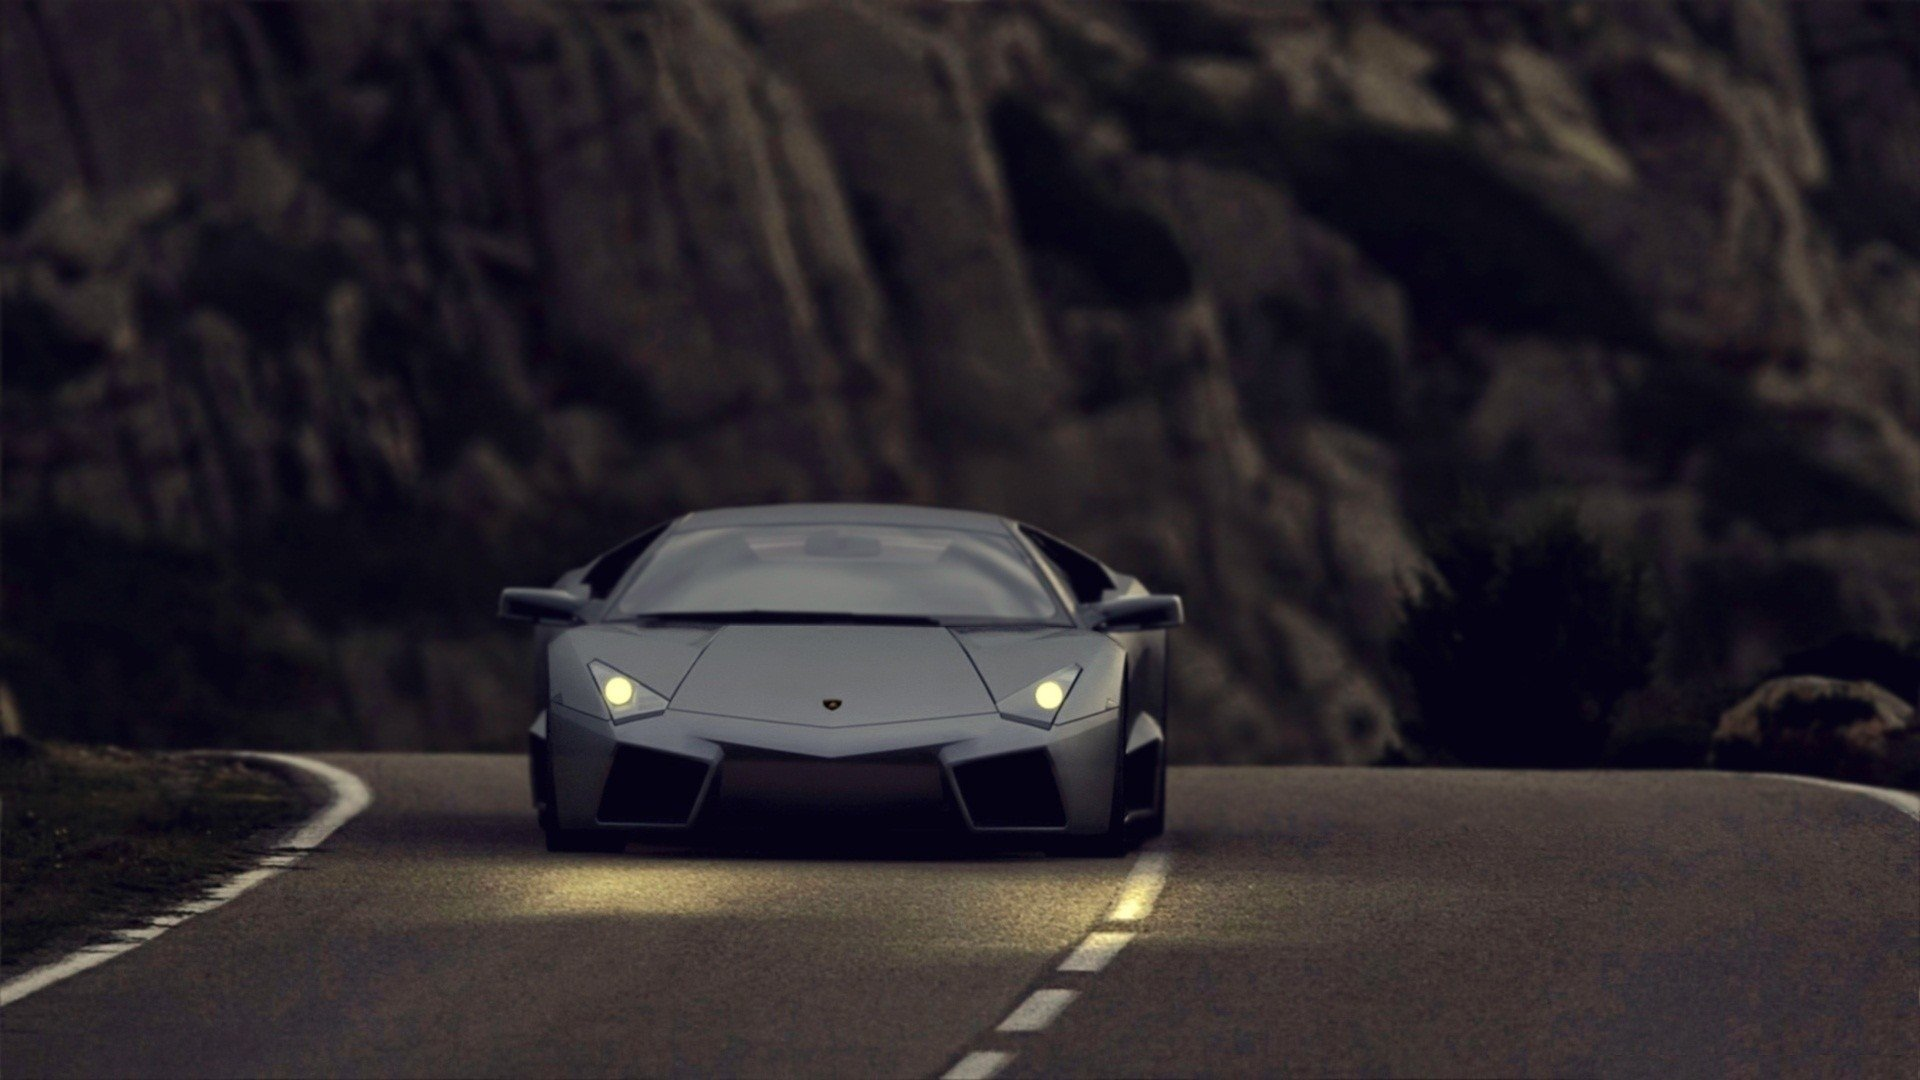 25 lamborghini reventón hd wallpapers | background images